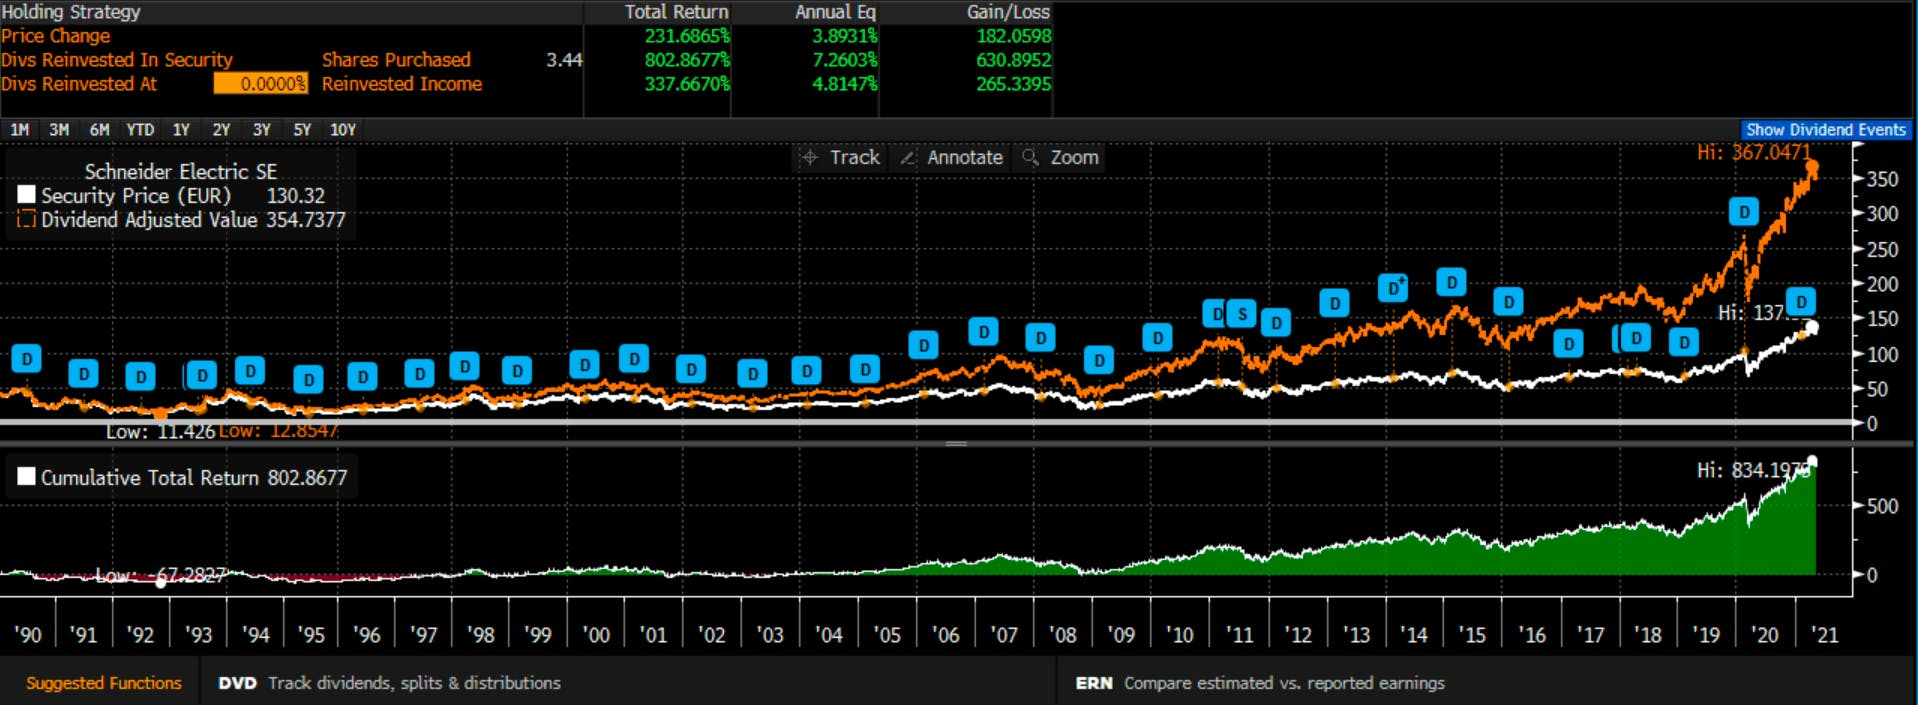 Is the Schneider Electric stock worth buying?